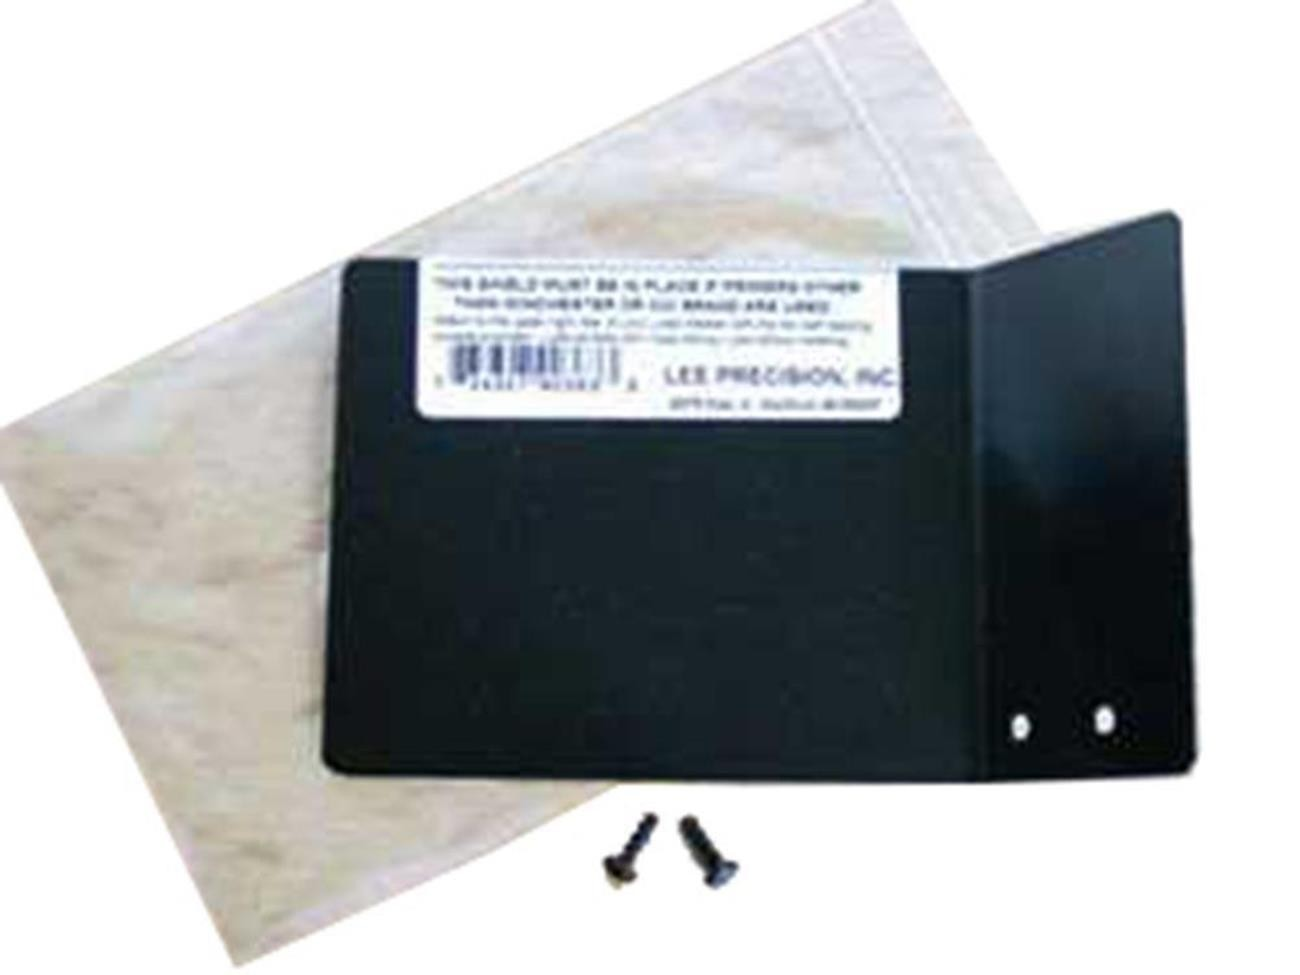 NEW LEE EXPLOSION SHIELD FOR LOADMASTER ONLY 90363